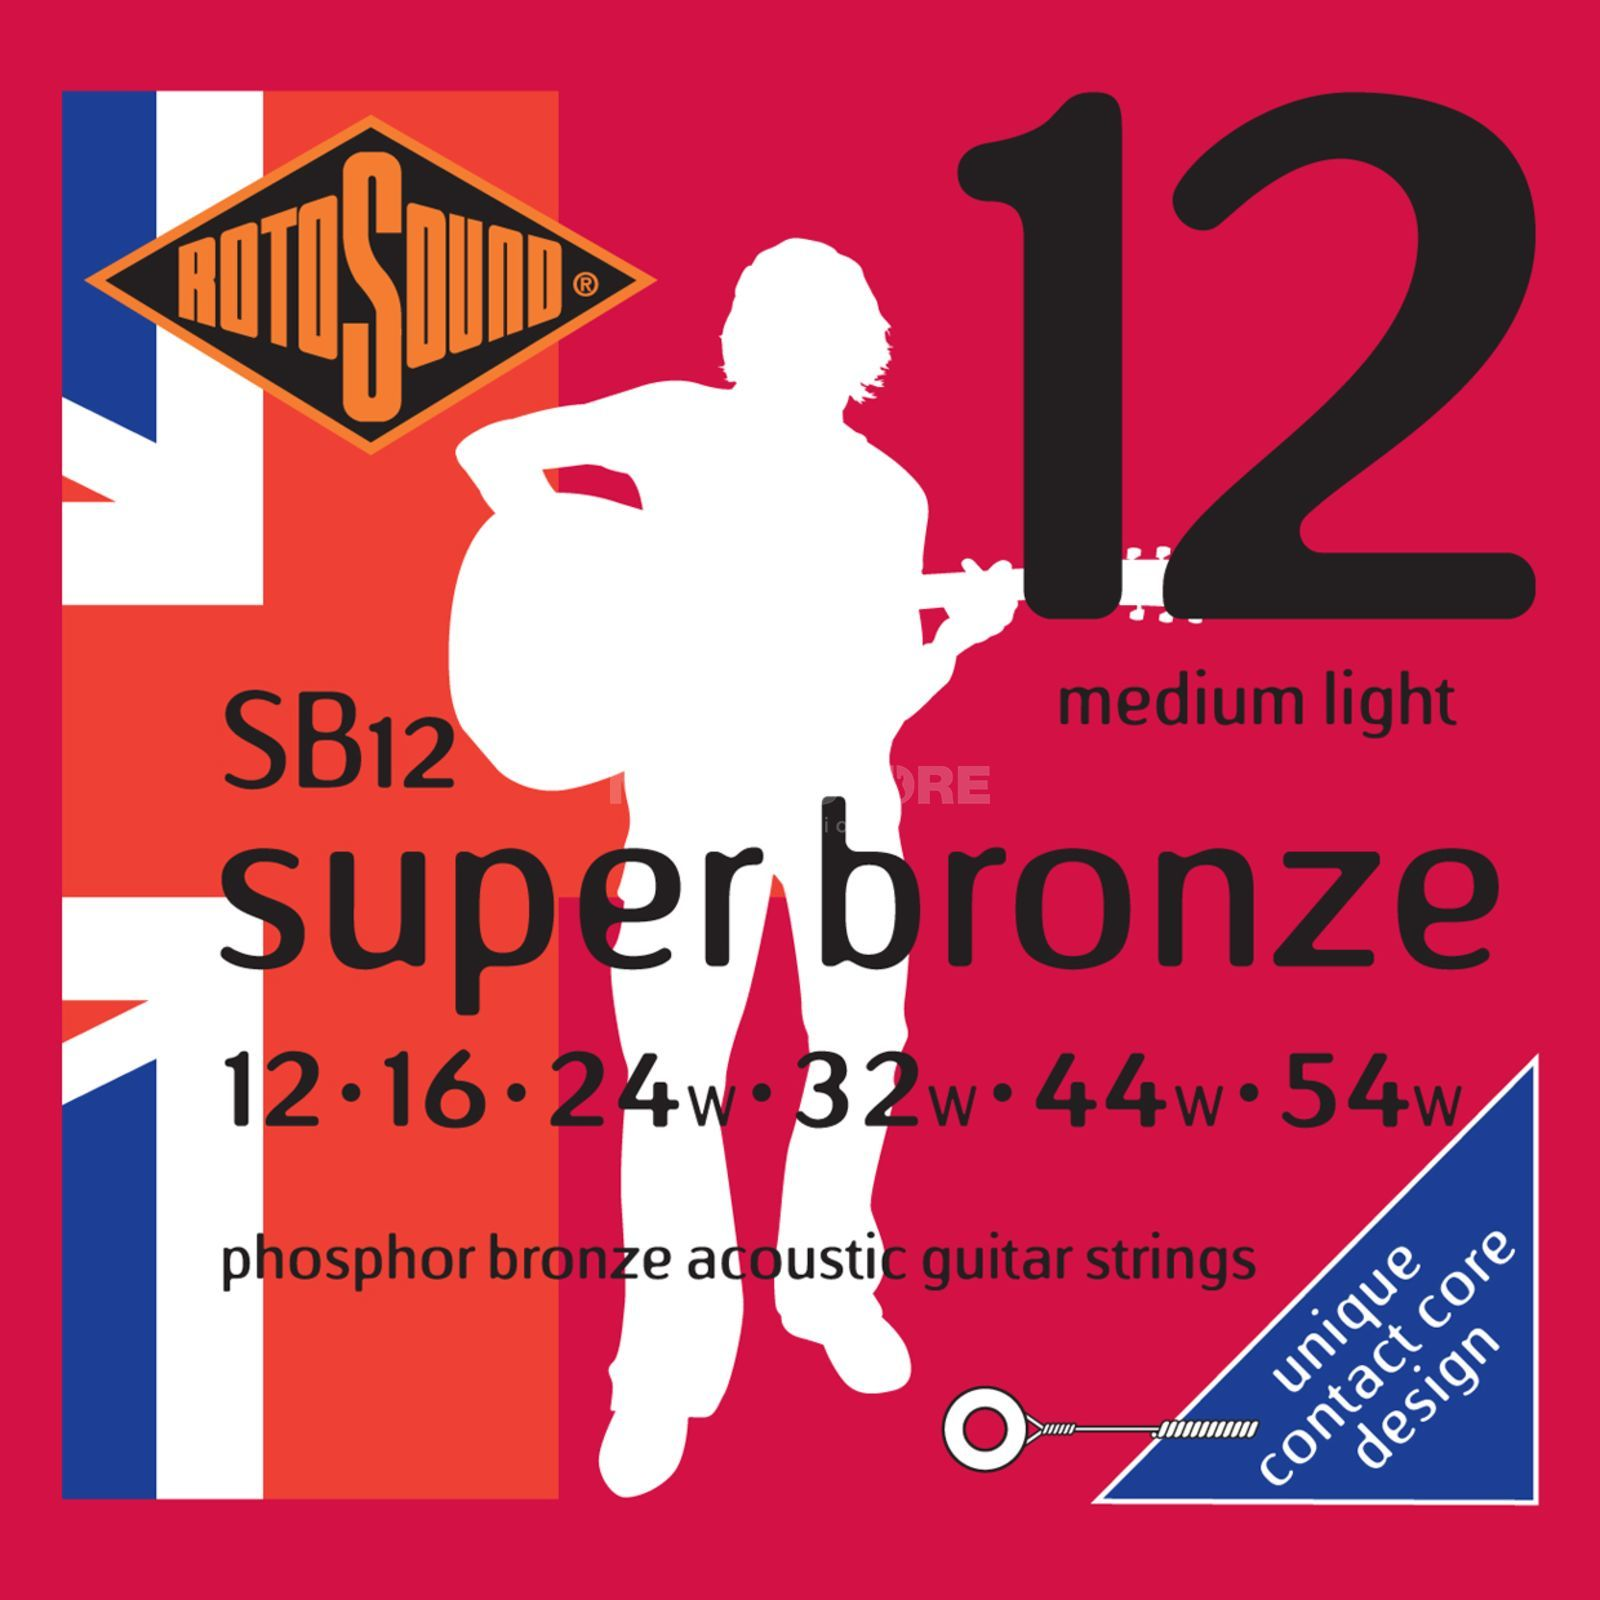 Rotosound Super Bronze SB12 12-54 Contact Core Phosphor Bronze Produktbild